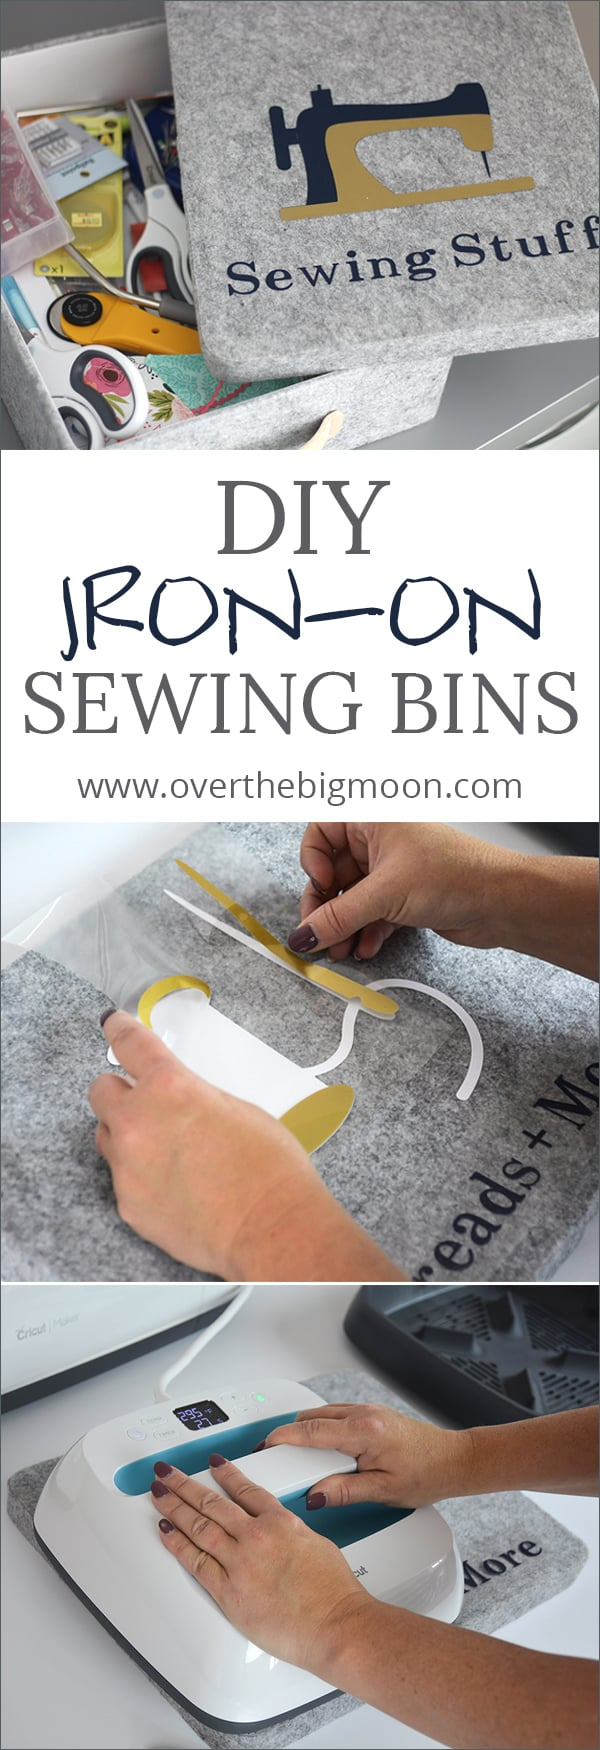 DIY Iron-On Sewing Bins - Love these Fabric Bins for organizing! You could customize them for anything and this tutorial for custom iron-ons is awesome! From www.overthebigmoon.com!